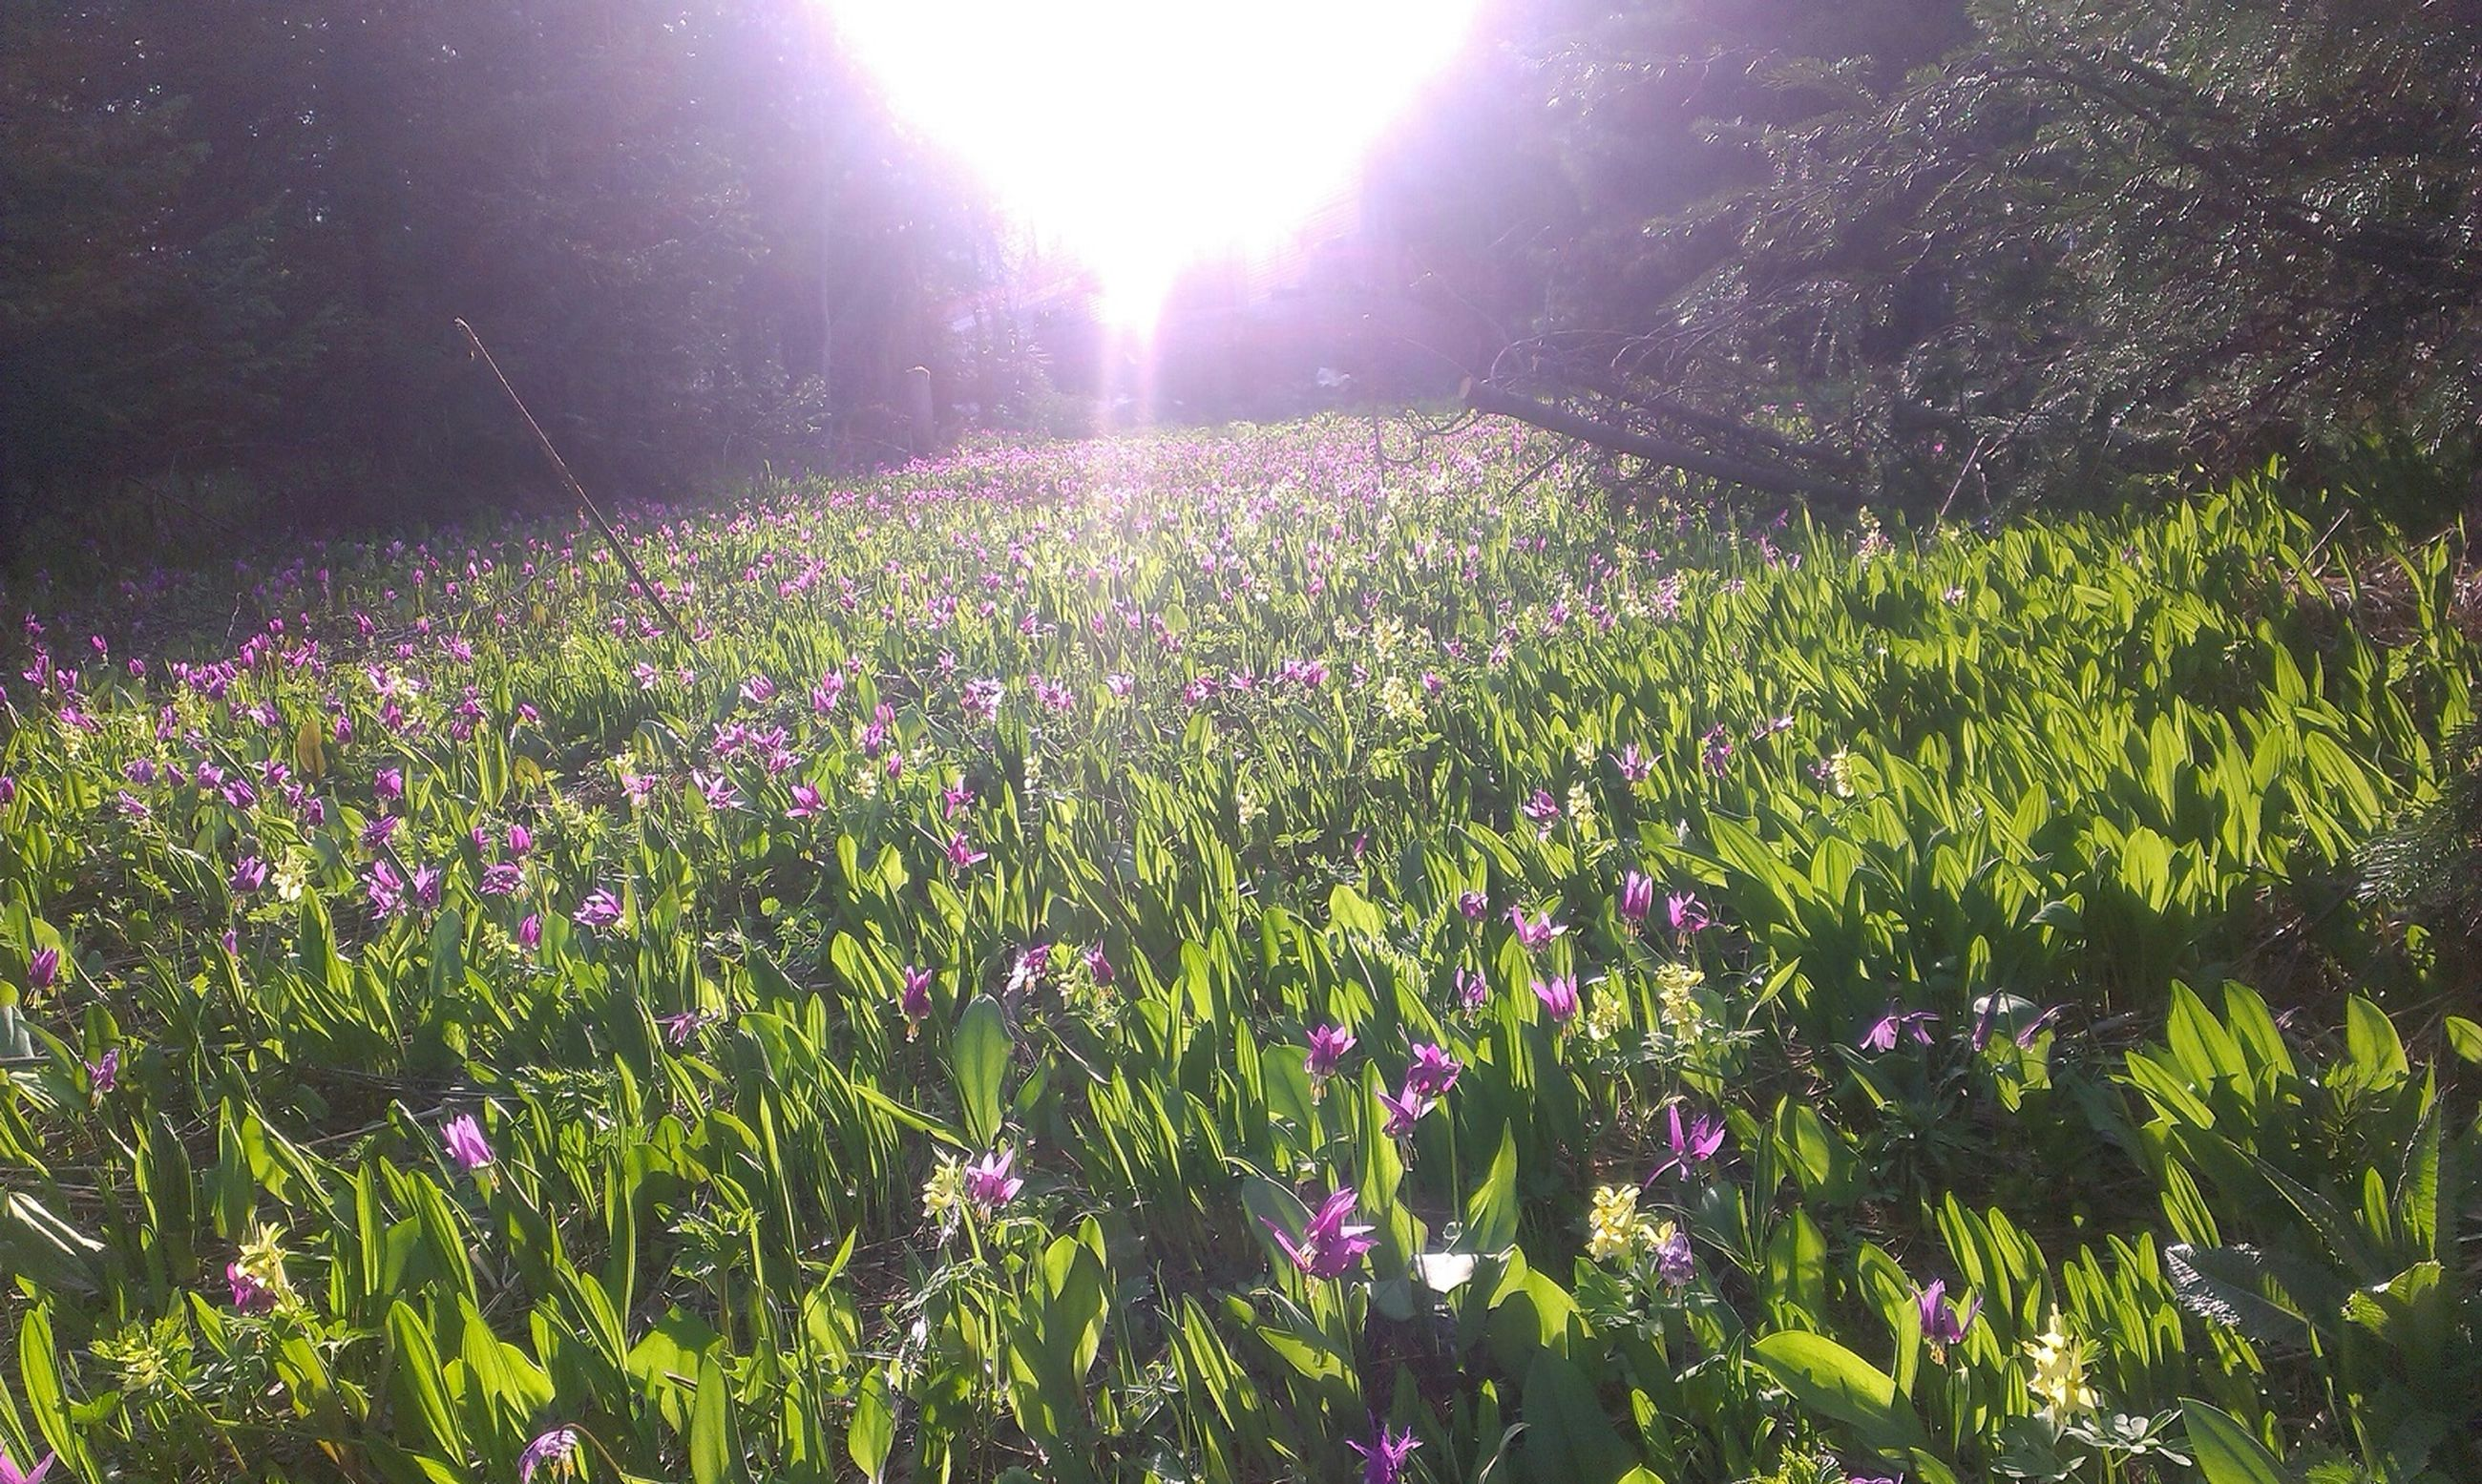 flower, growth, freshness, beauty in nature, plant, fragility, nature, sunlight, blooming, sunbeam, lens flare, petal, field, tranquility, sun, in bloom, outdoors, day, no people, green color